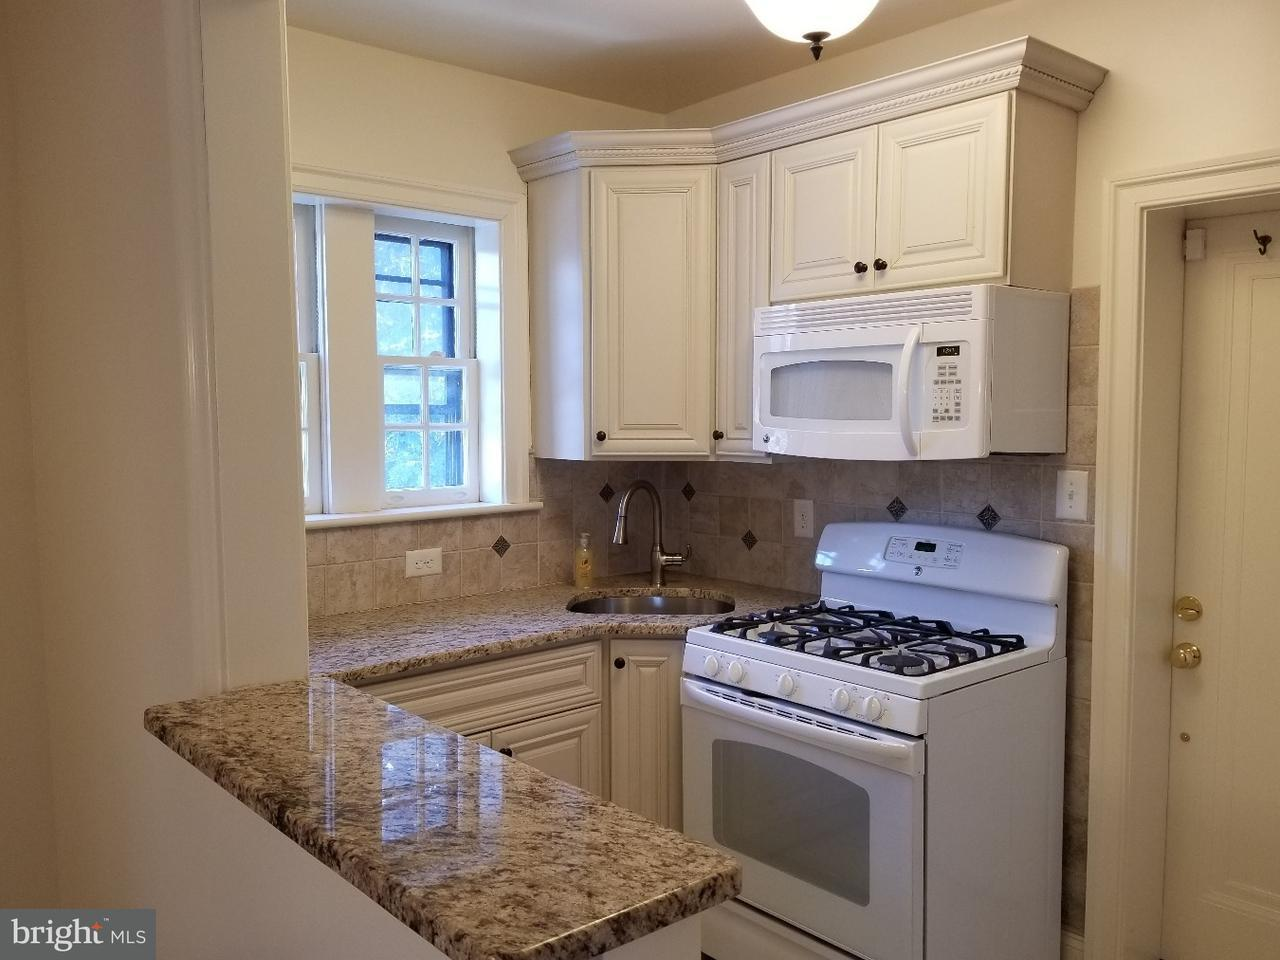 Single Family Home for Rent at 210 E MAPLE AVE #A3 Merchantville, New Jersey 08109 United States